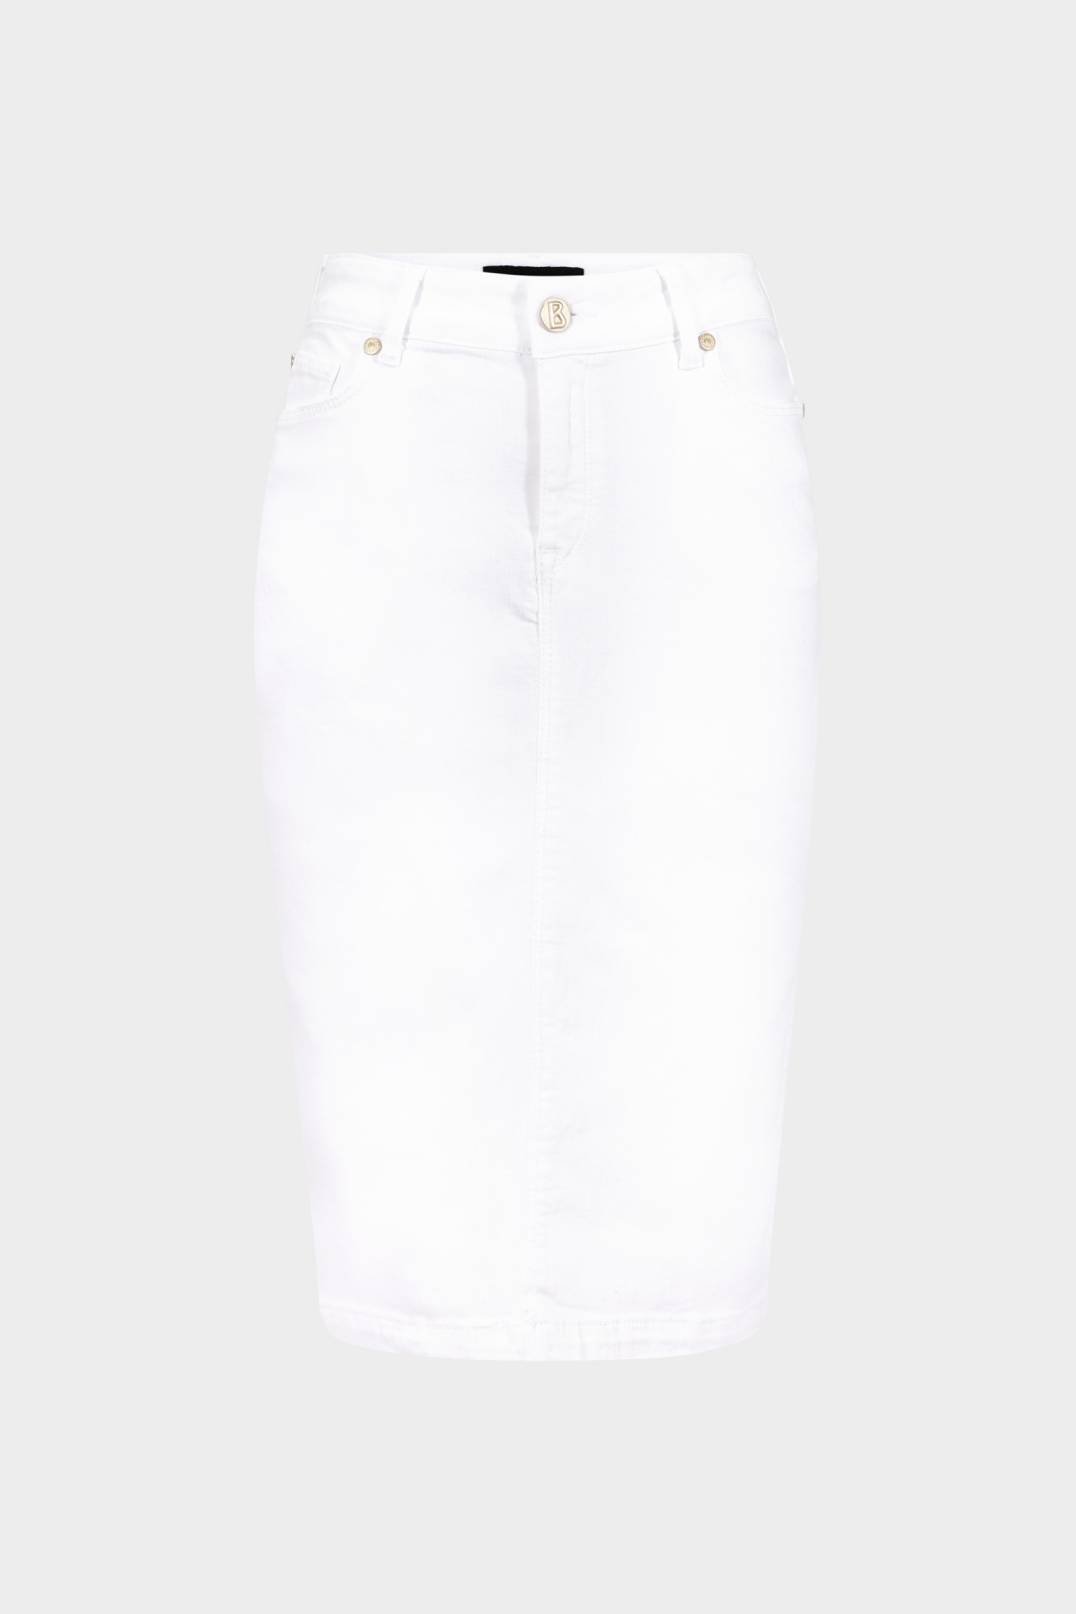 fabeb39dff0b84 Bogner Jodie Jean skirt in White for Women | BOGNER EU